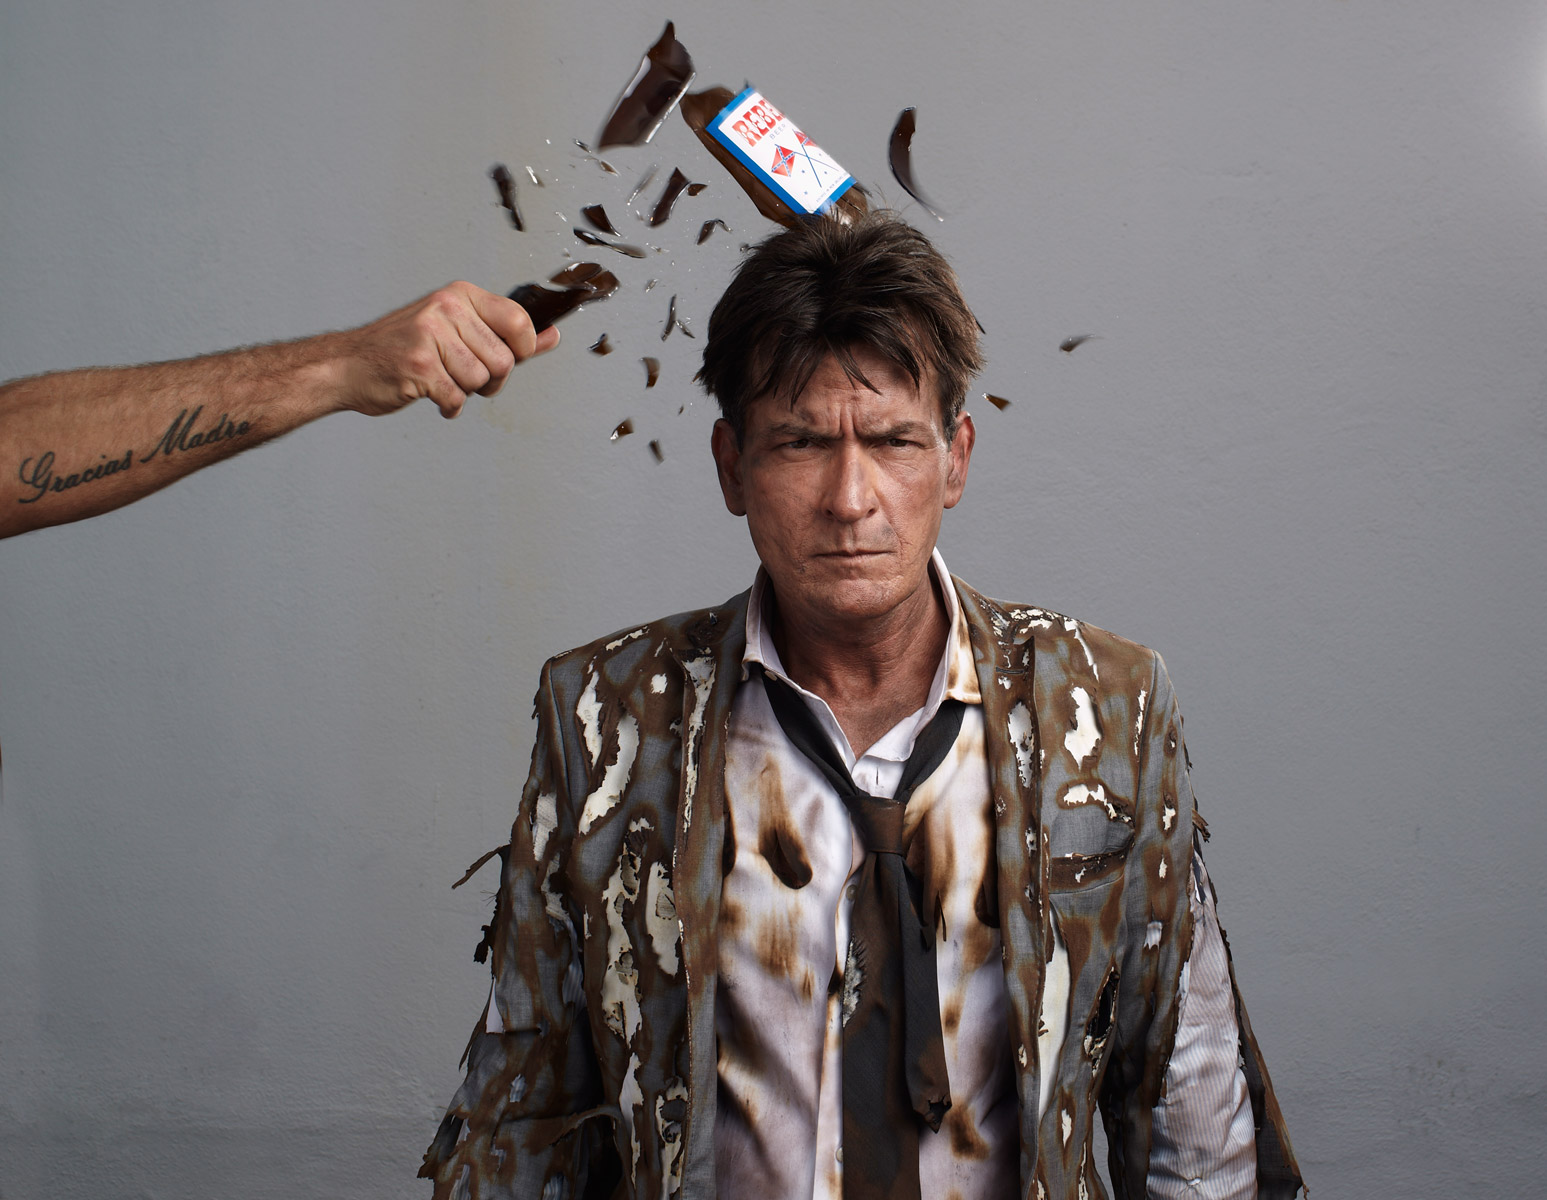 7 Charlie Sheen by Gavin Bond